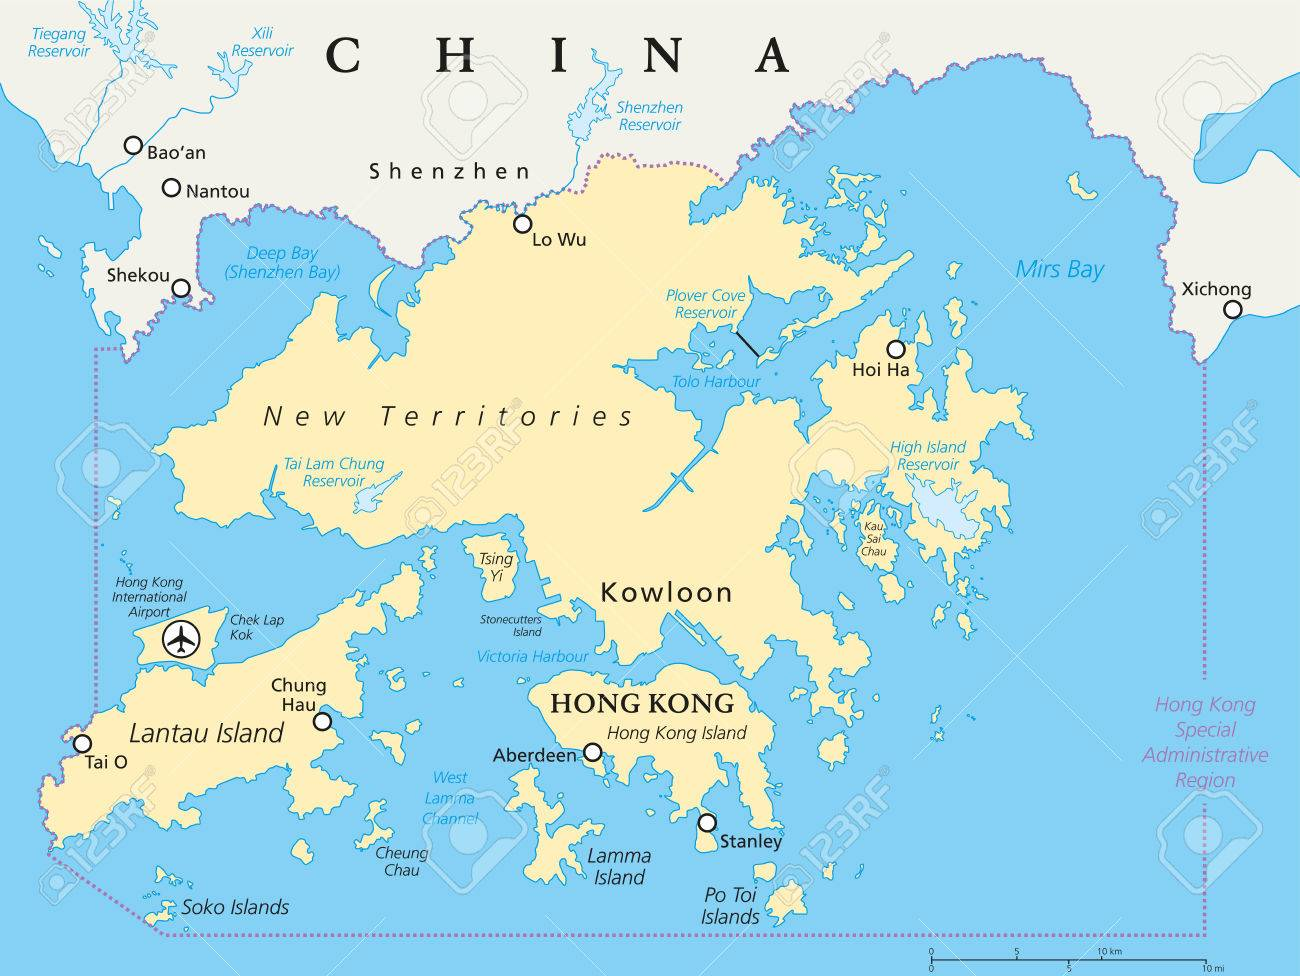 A Political Map Of The World.Hong Kong And Vicinity Political Map World Financial Centre